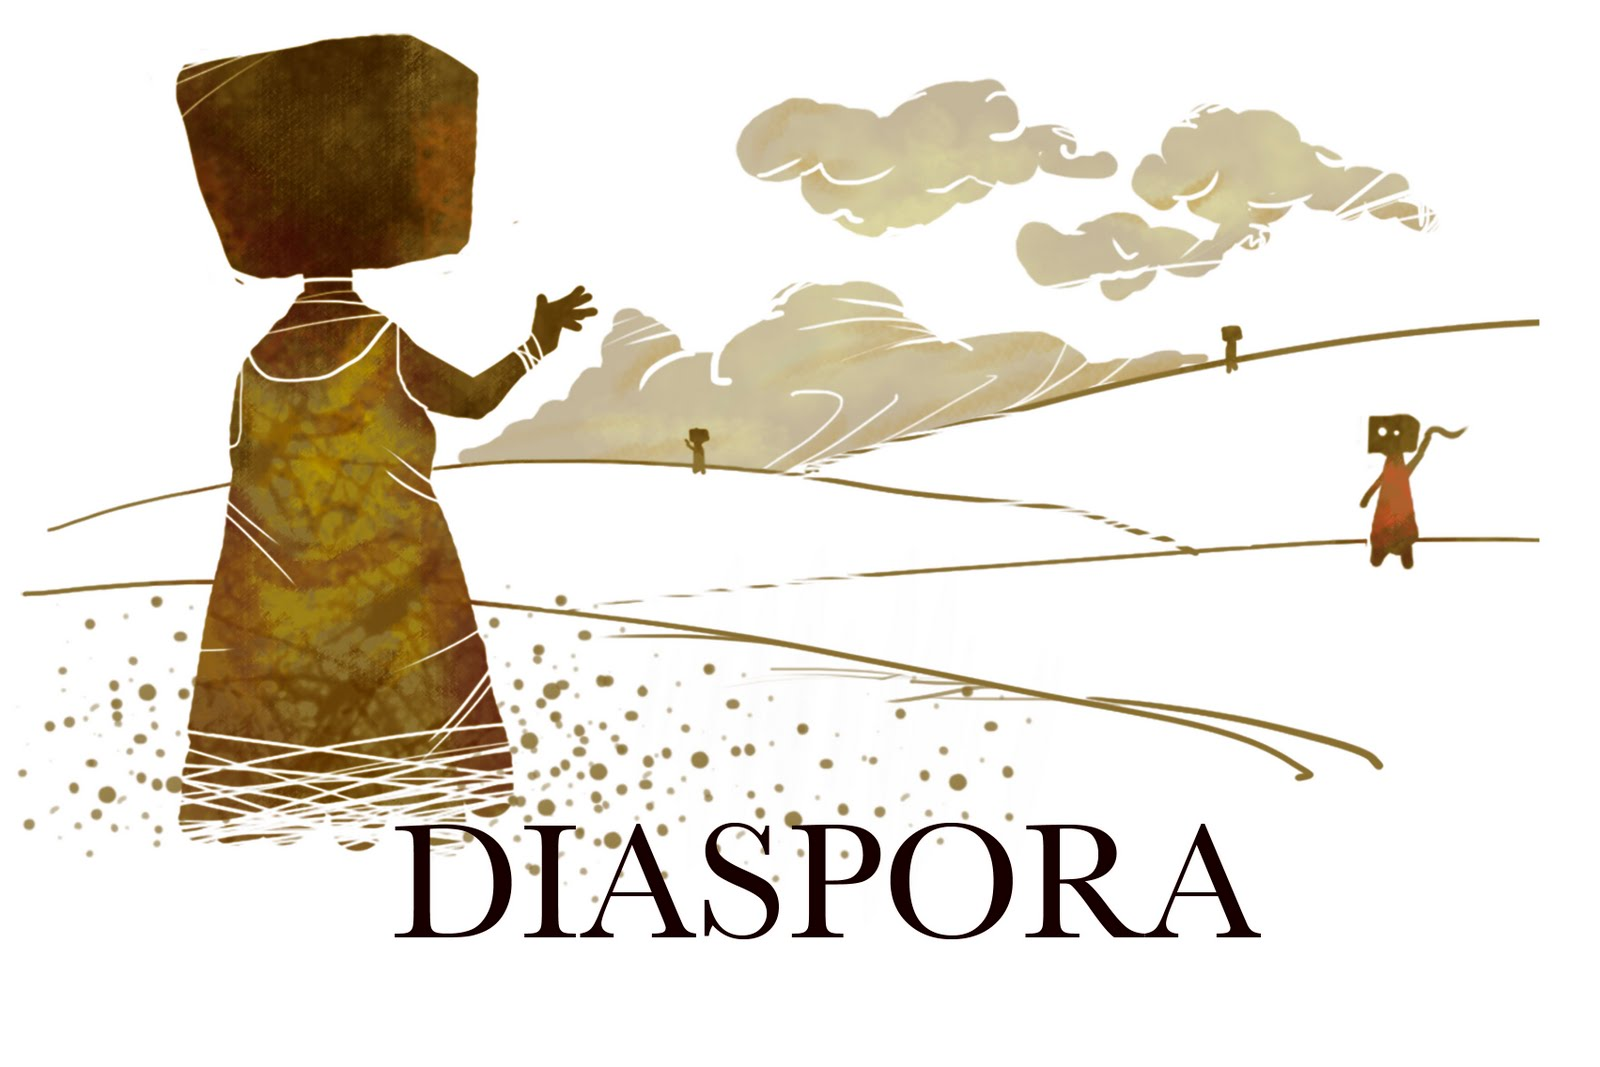 Diaspora Diplomacy: A Double Edged Sword